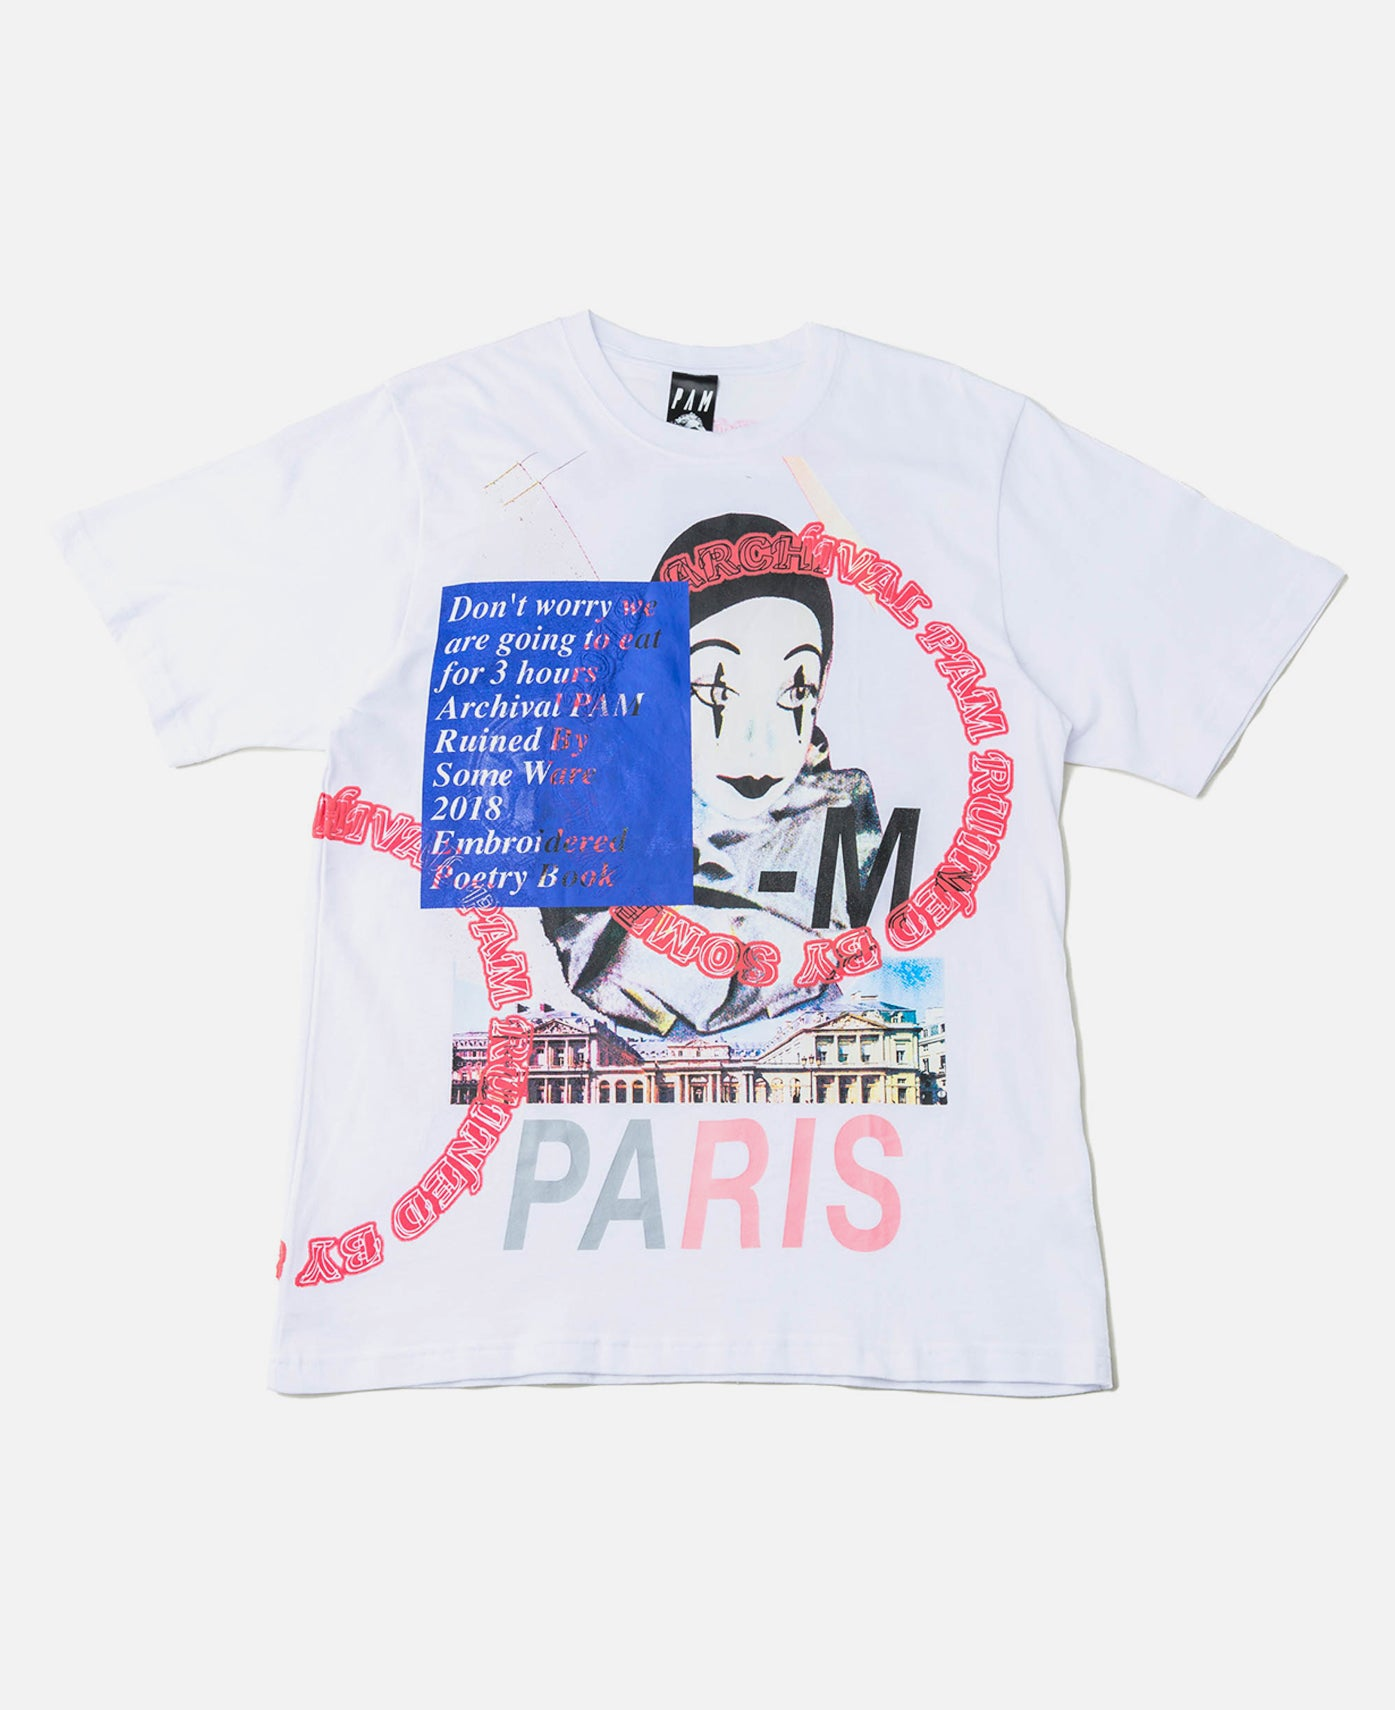 Some Ware x P.A.M. Paris Tee